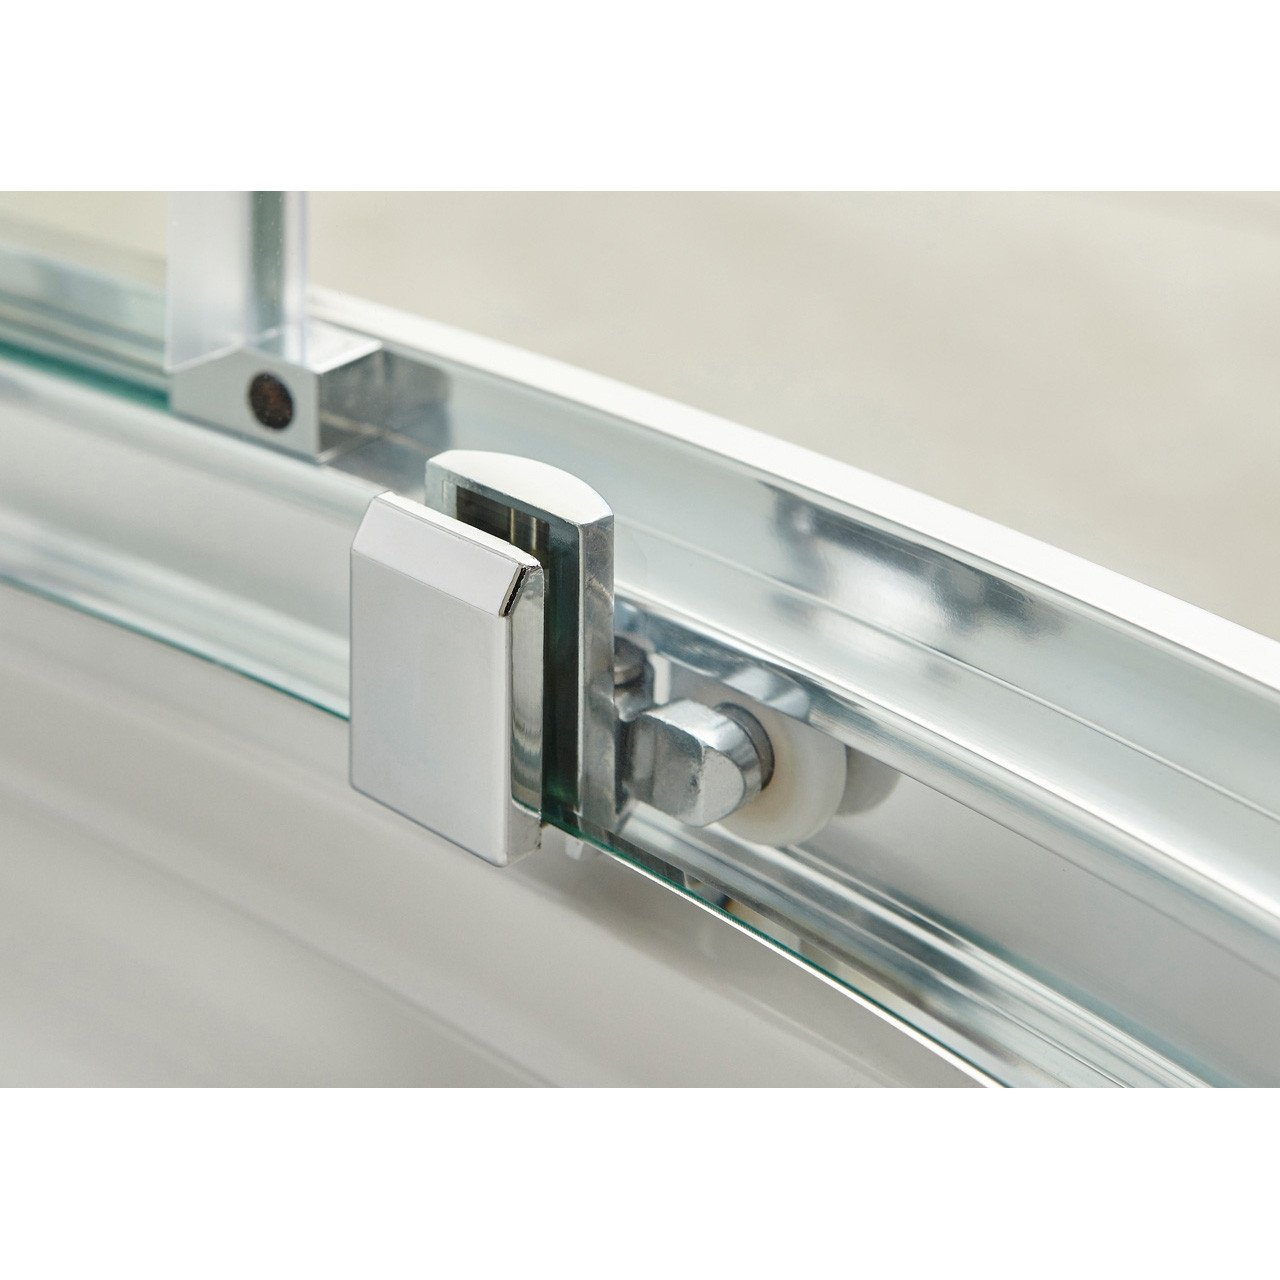 Premier 1200mm Single Door Slider 8mm Thick - M1200SS-E8